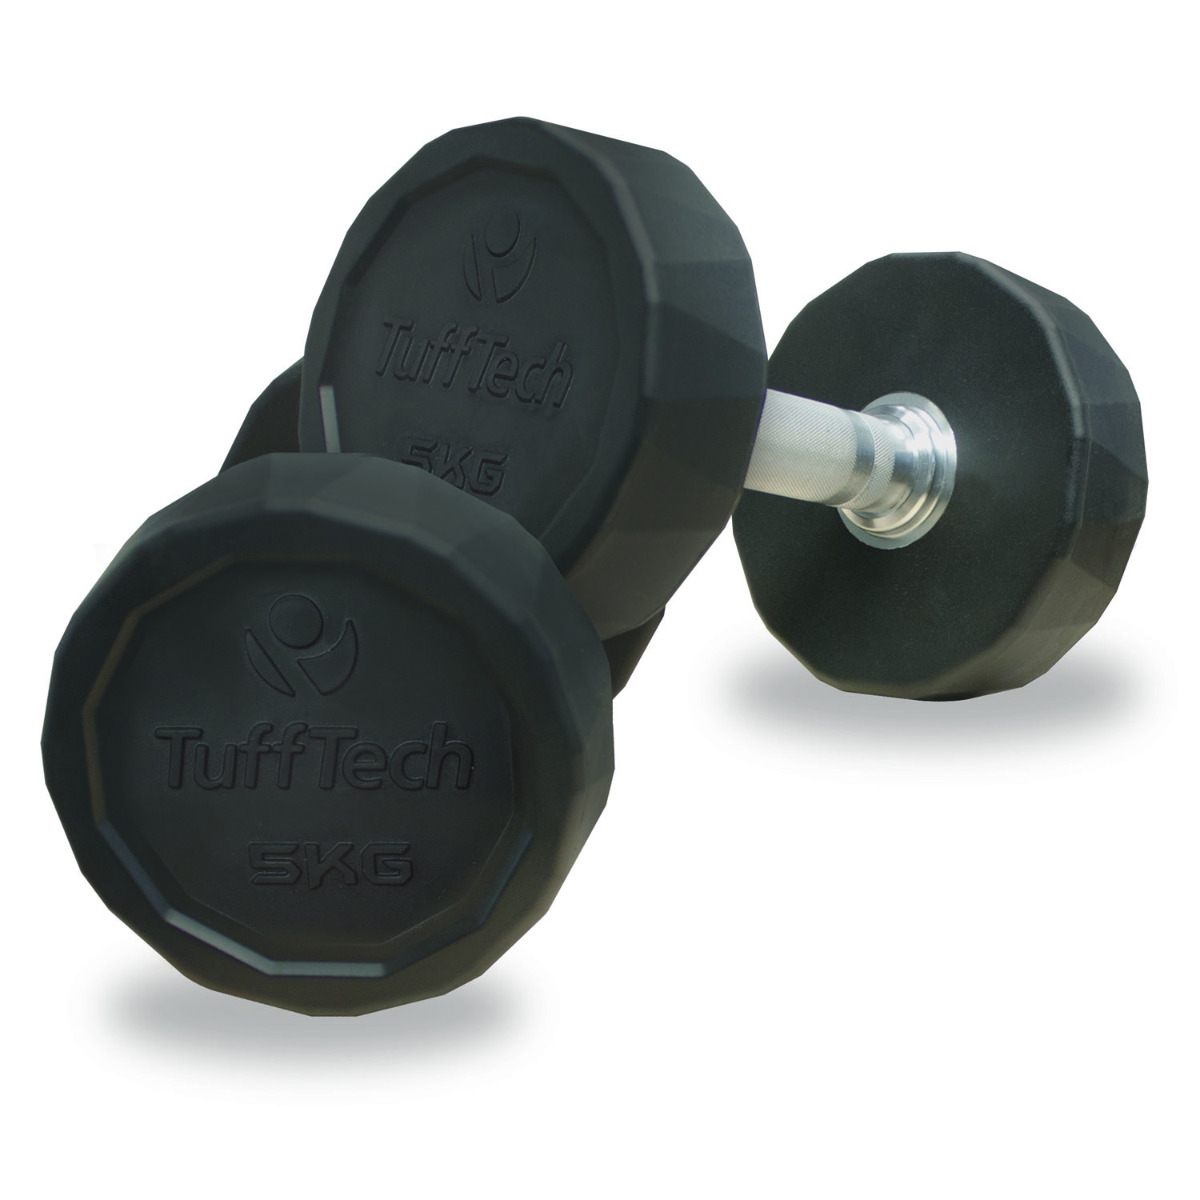 Pair of 1kg Rubber Dumbbells